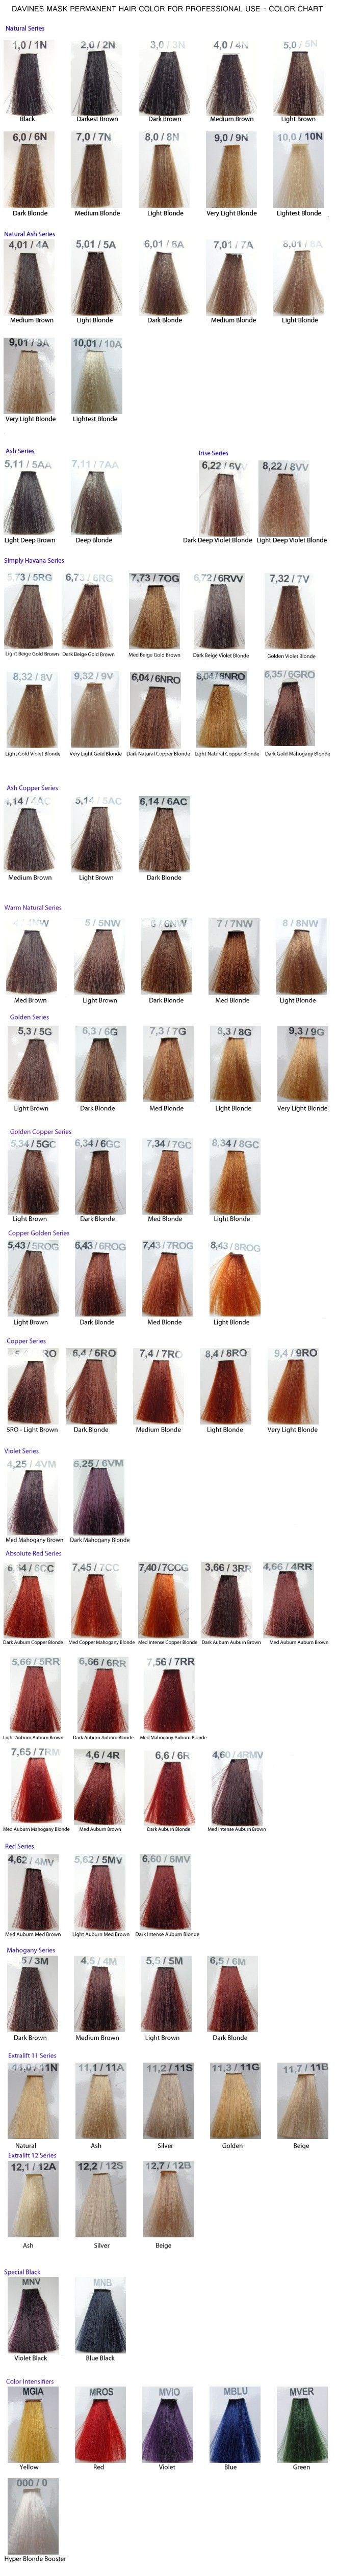 Davines Mask Color Chart Hair Pinterest Hair Hair Color And